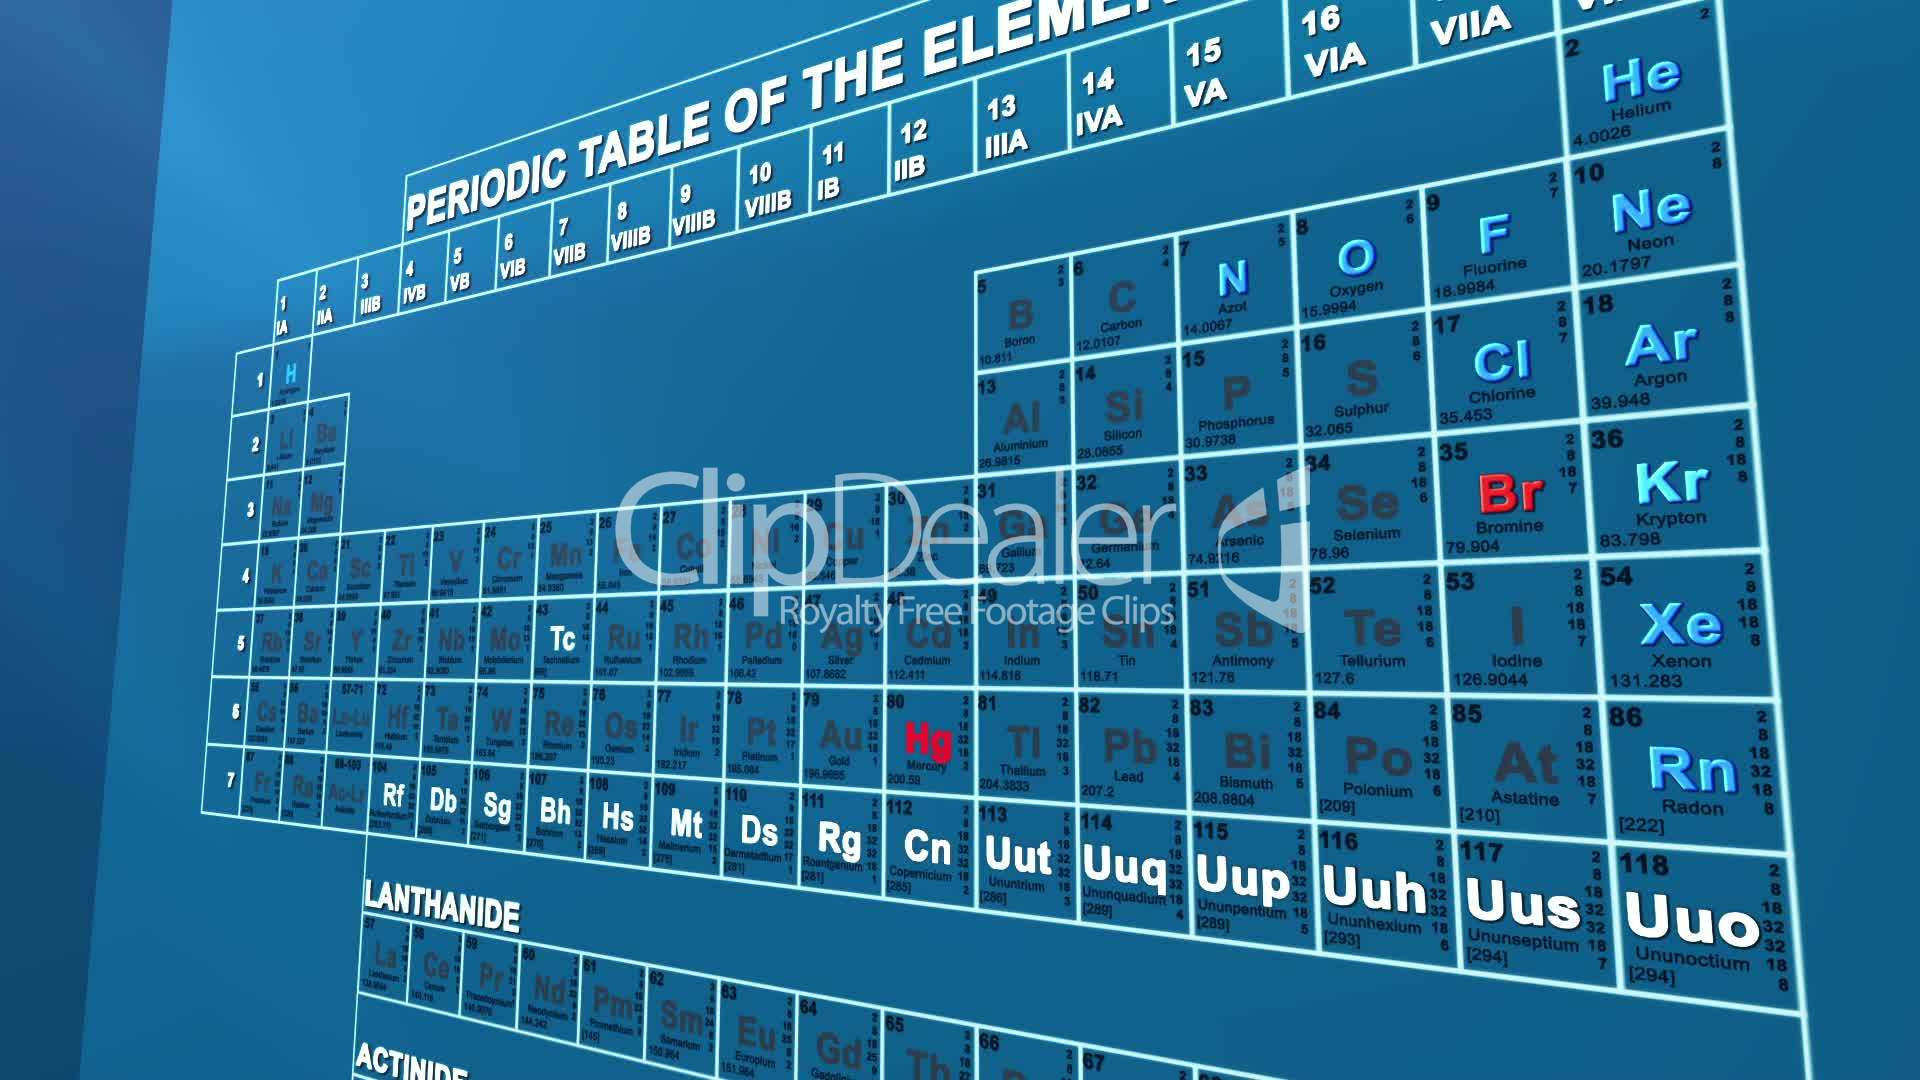 Periodic table of the elements royalty free video and stock footage symbol table technology titanium ununoctium uranium weight xenon zirconium royalty free videos gamestrikefo Images